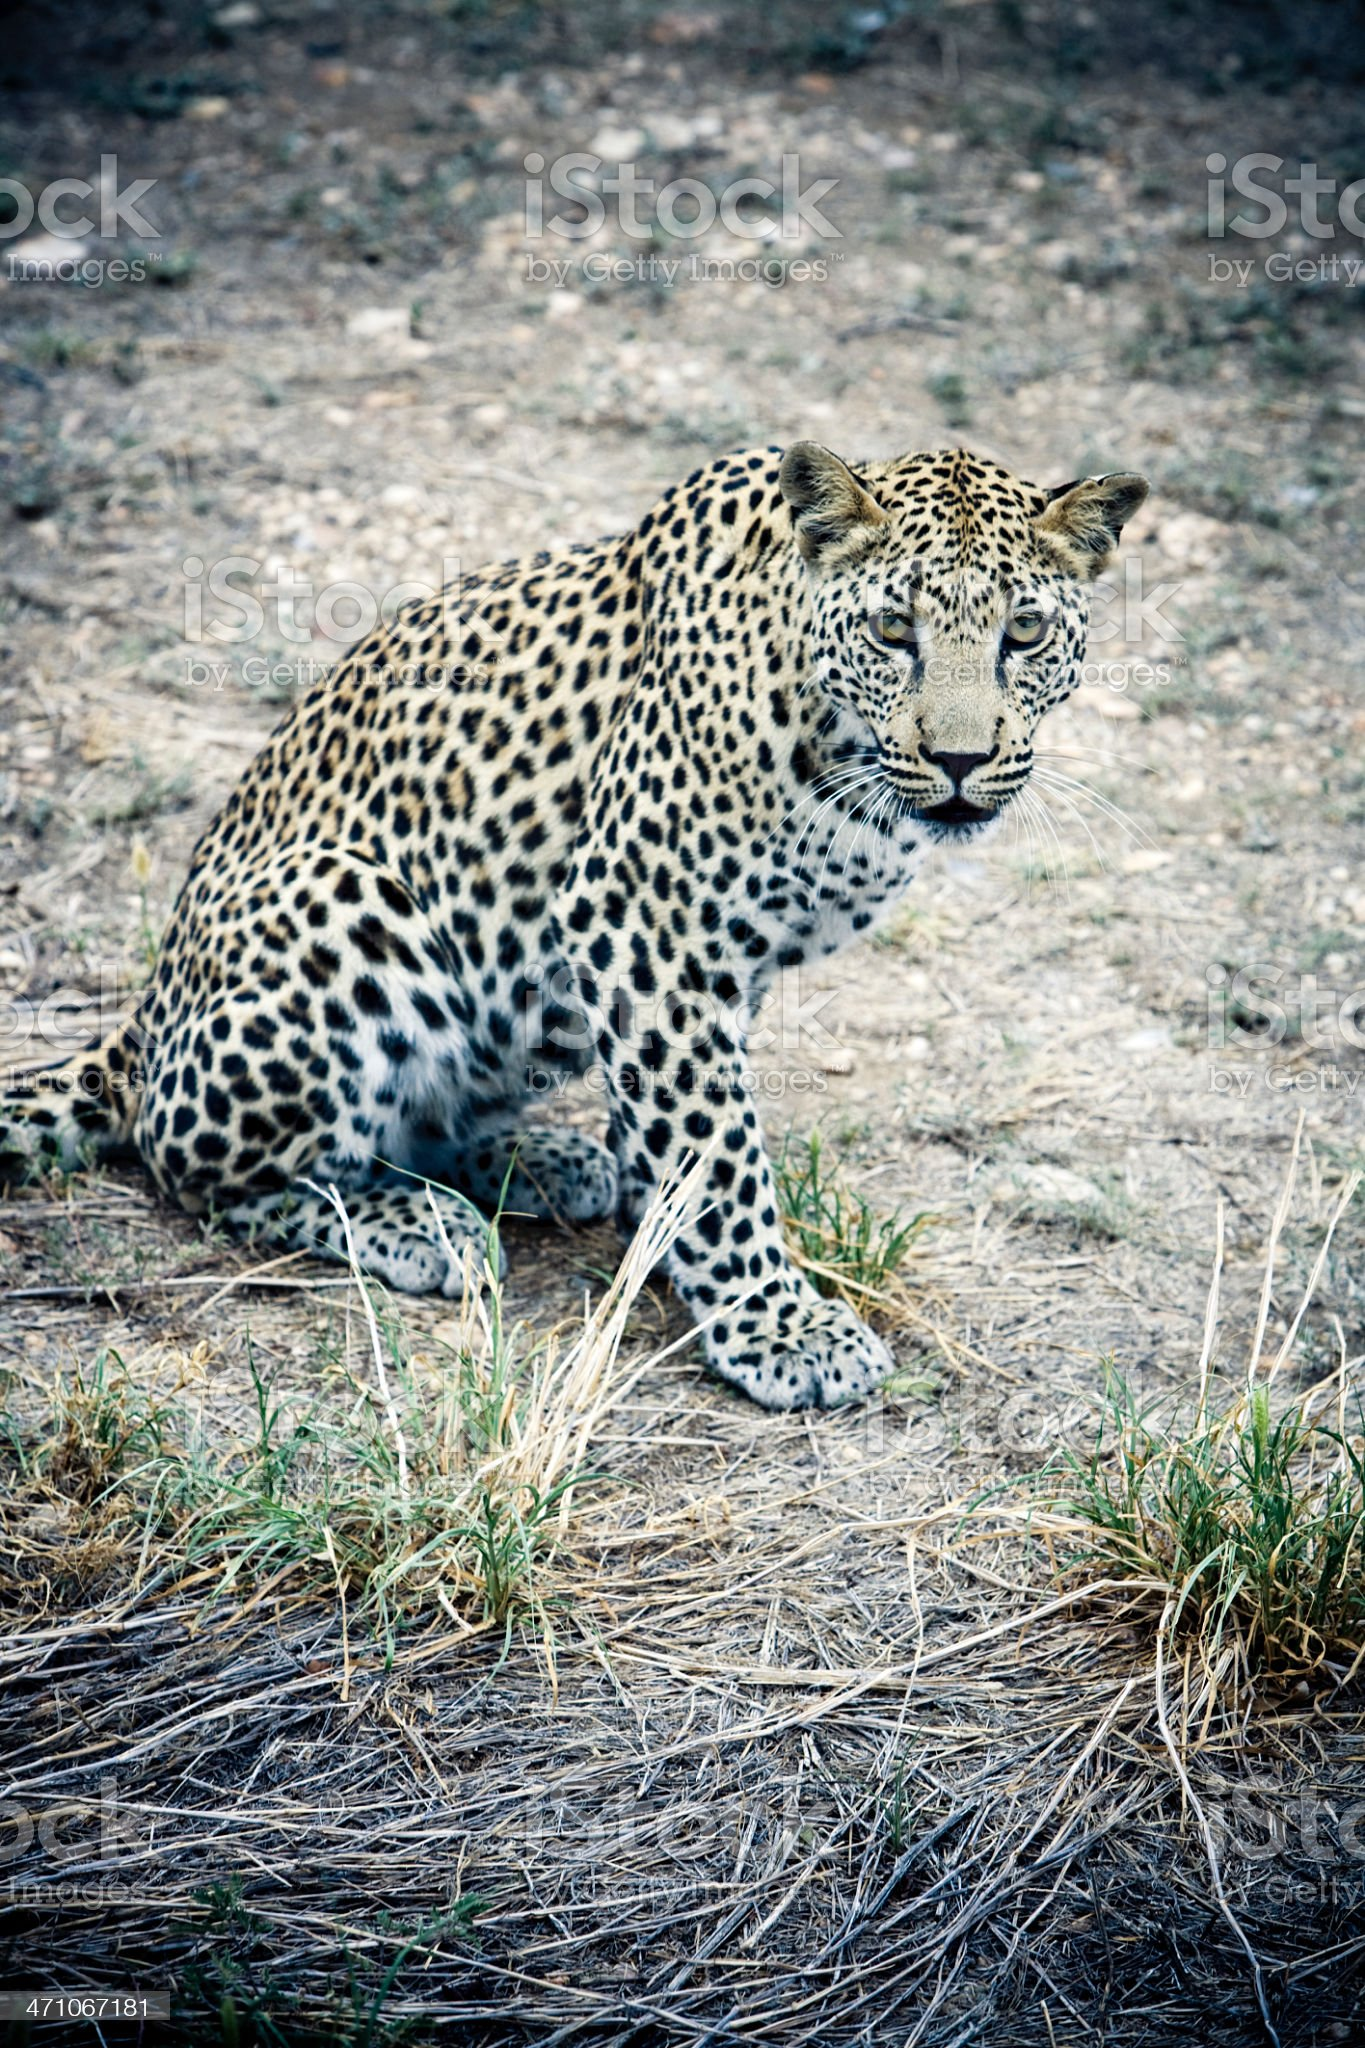 Leopard in the Wilderness royalty-free stock photo